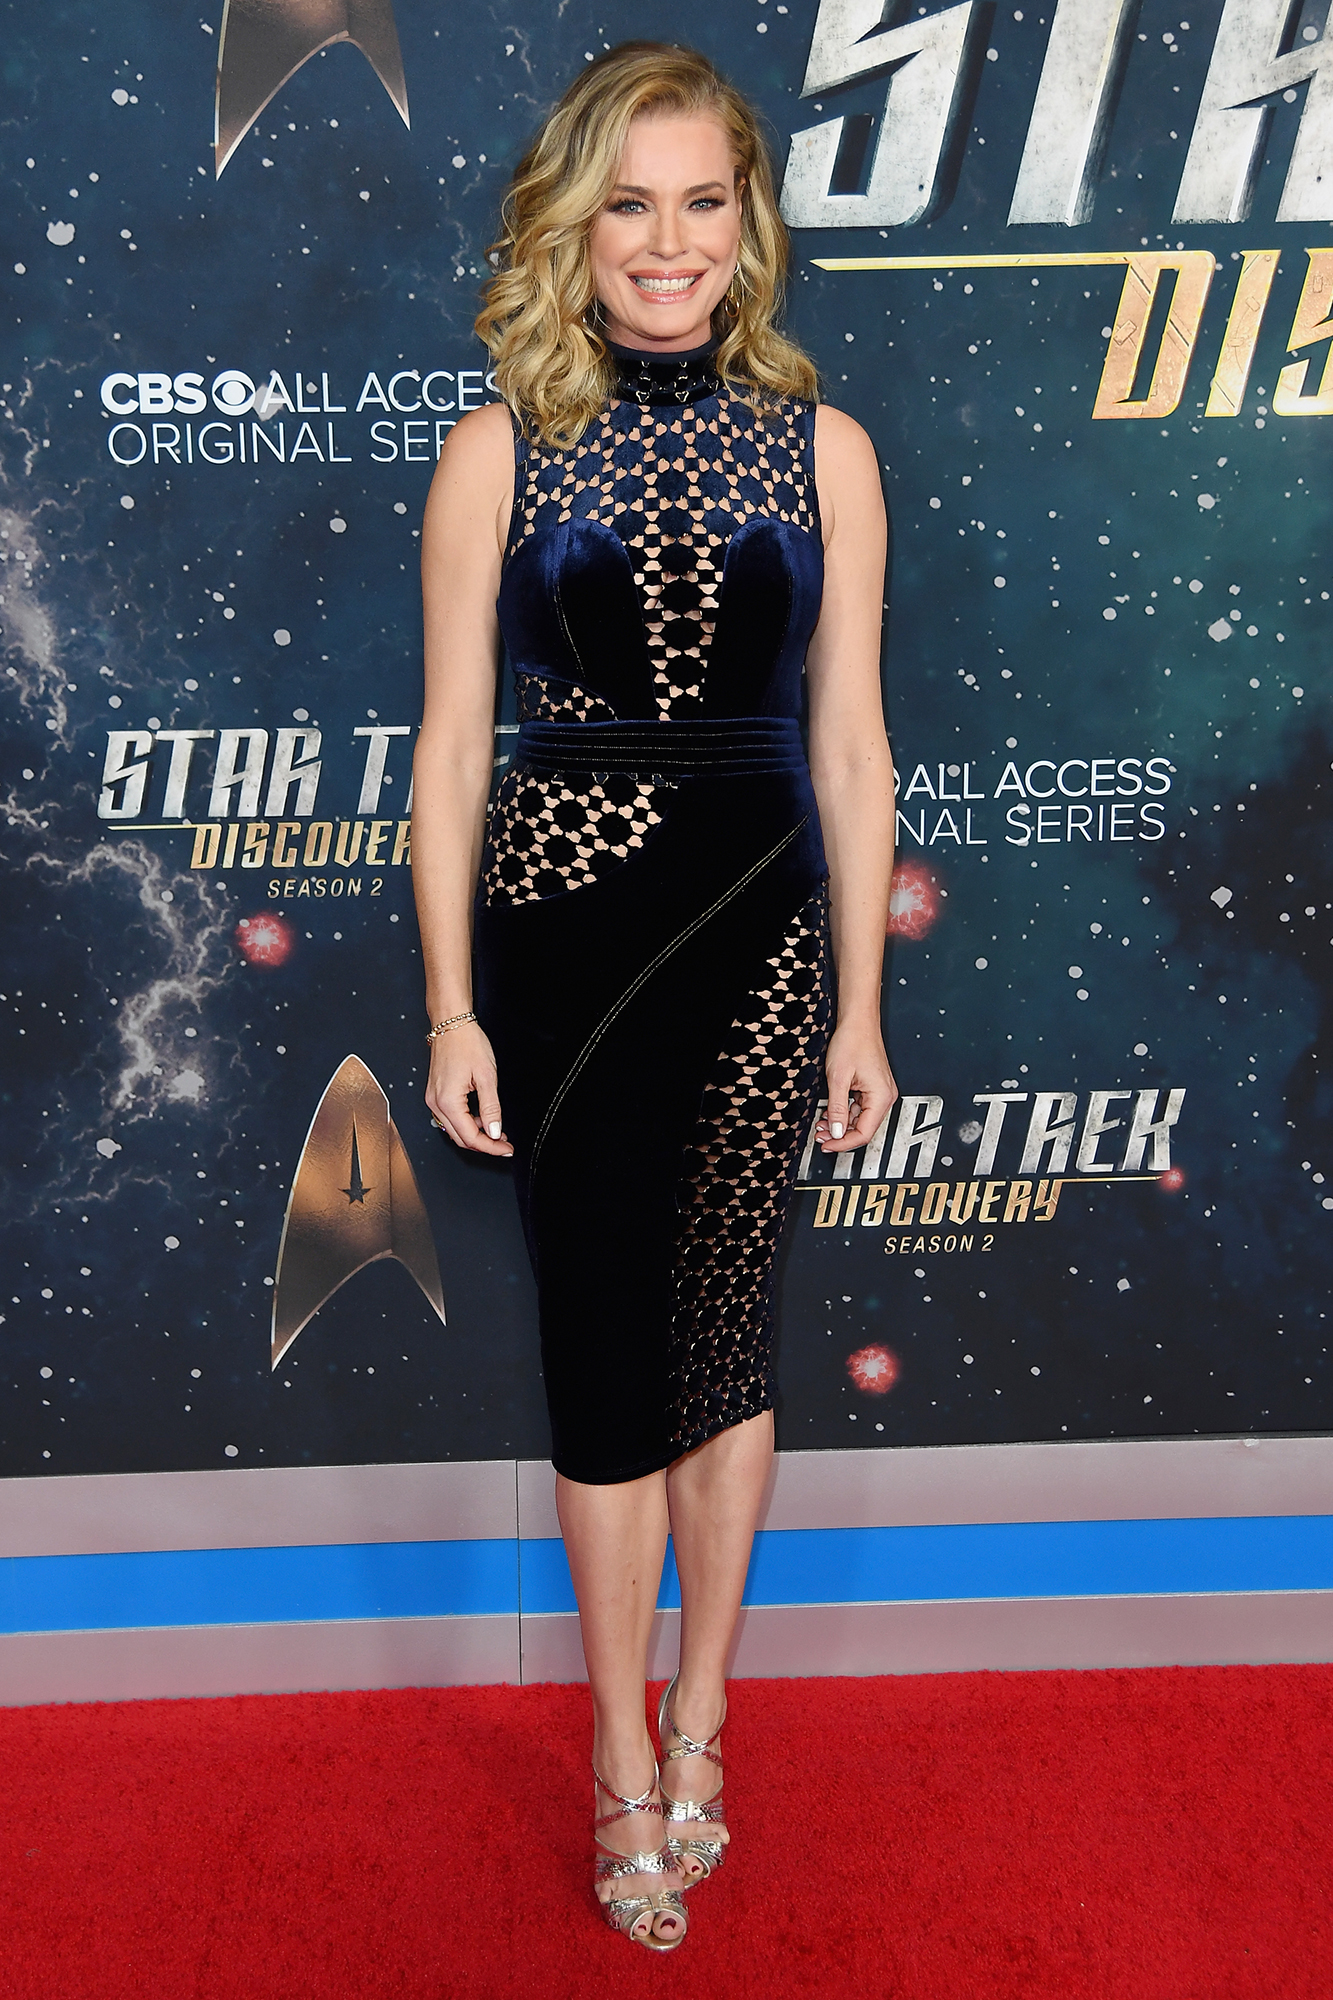 Rebecca Romijn Reveals the One Thing She Won't Let Her Kids Do - Rebecca Romijn attends 'Star Trek: Discovery' Season 2 Premiere at Conrad New York on January 17, 2019 in New York City.